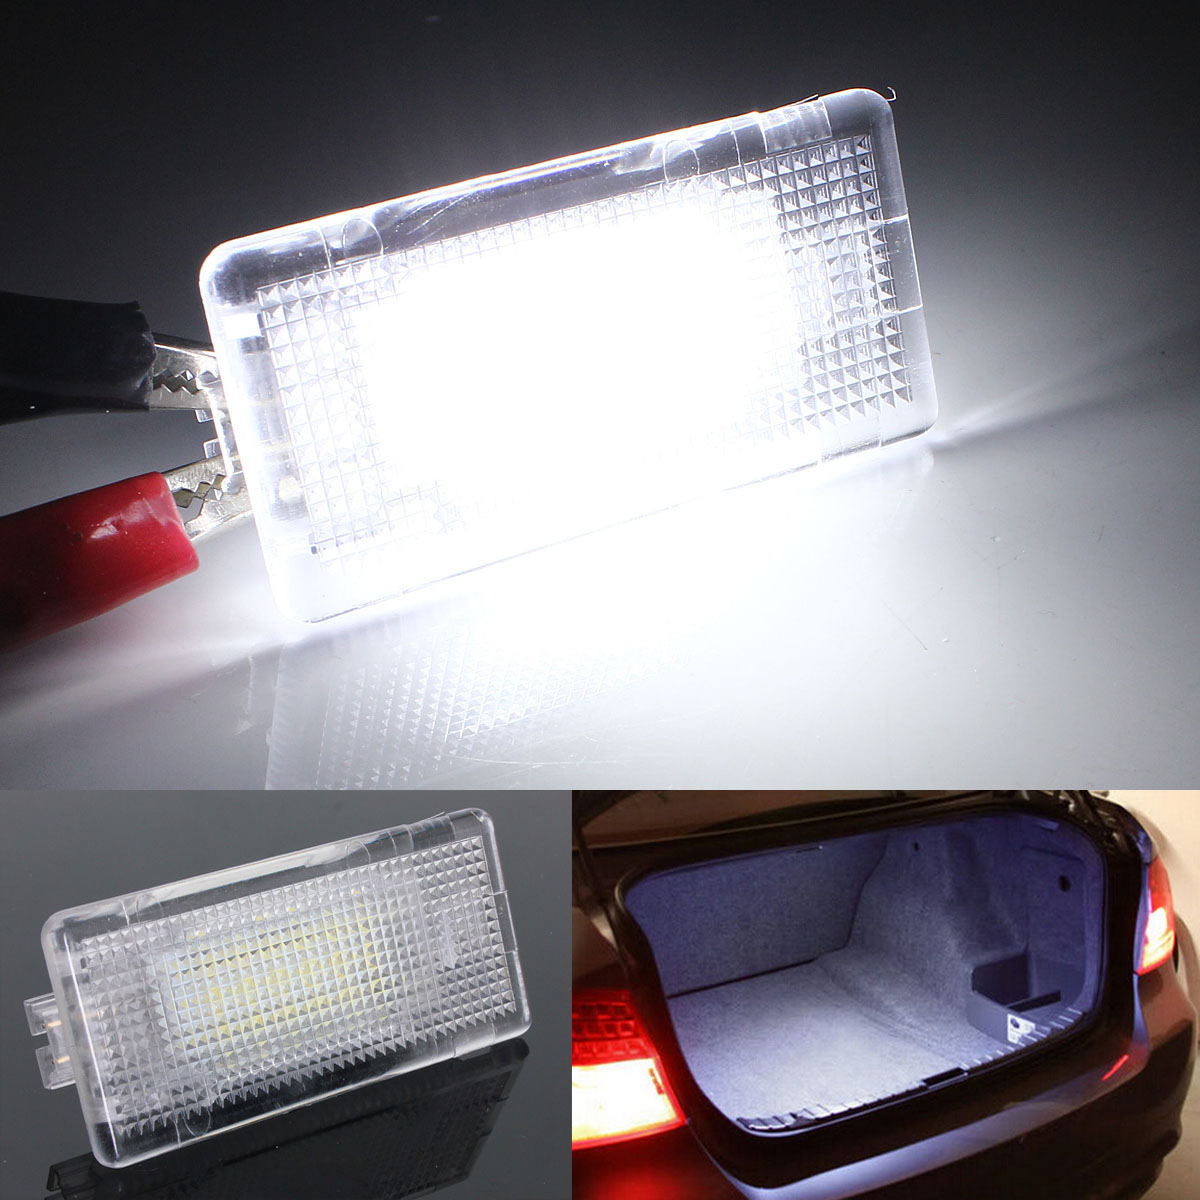 1x 12V Footwell Luggage Trunk Boot Glove Box LED Light For BMW E36 E38 E39 E46 E60 E60 E61 E65 E66 E82 E88 E90 E90 E91 E92 E93